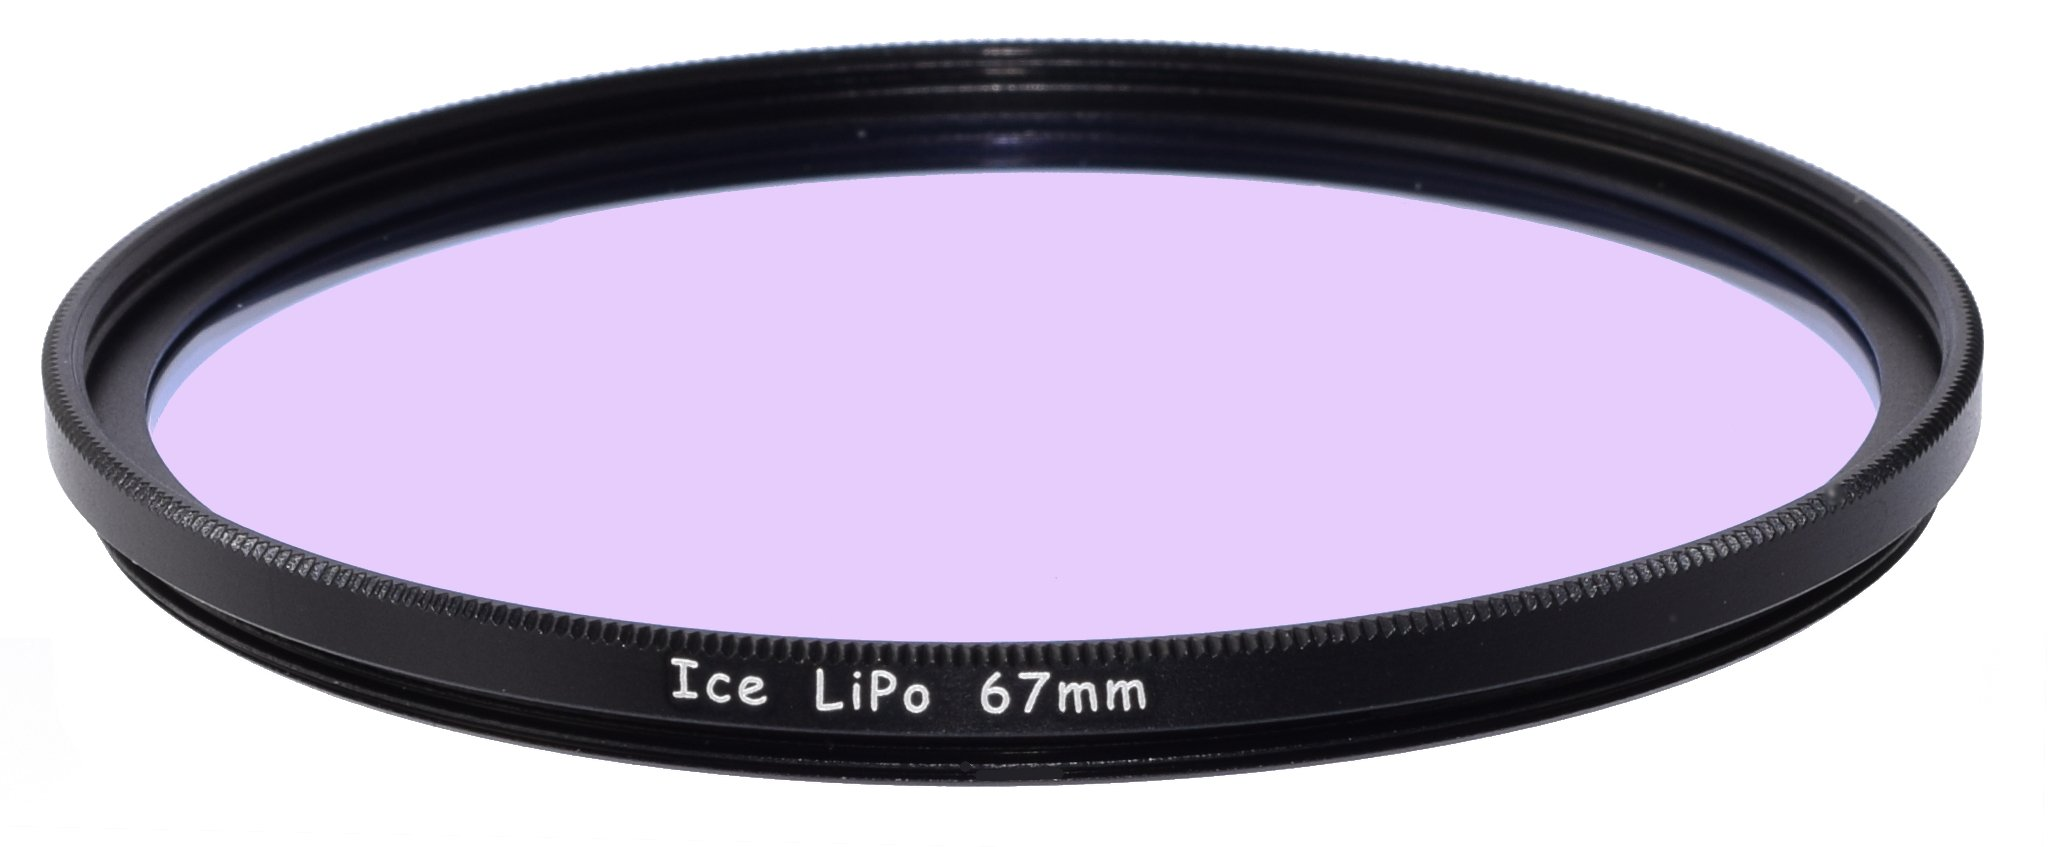 ICE 67mm LiPo Filter Light Pollution Reduction for Night Sky/Star 67 by Unknown